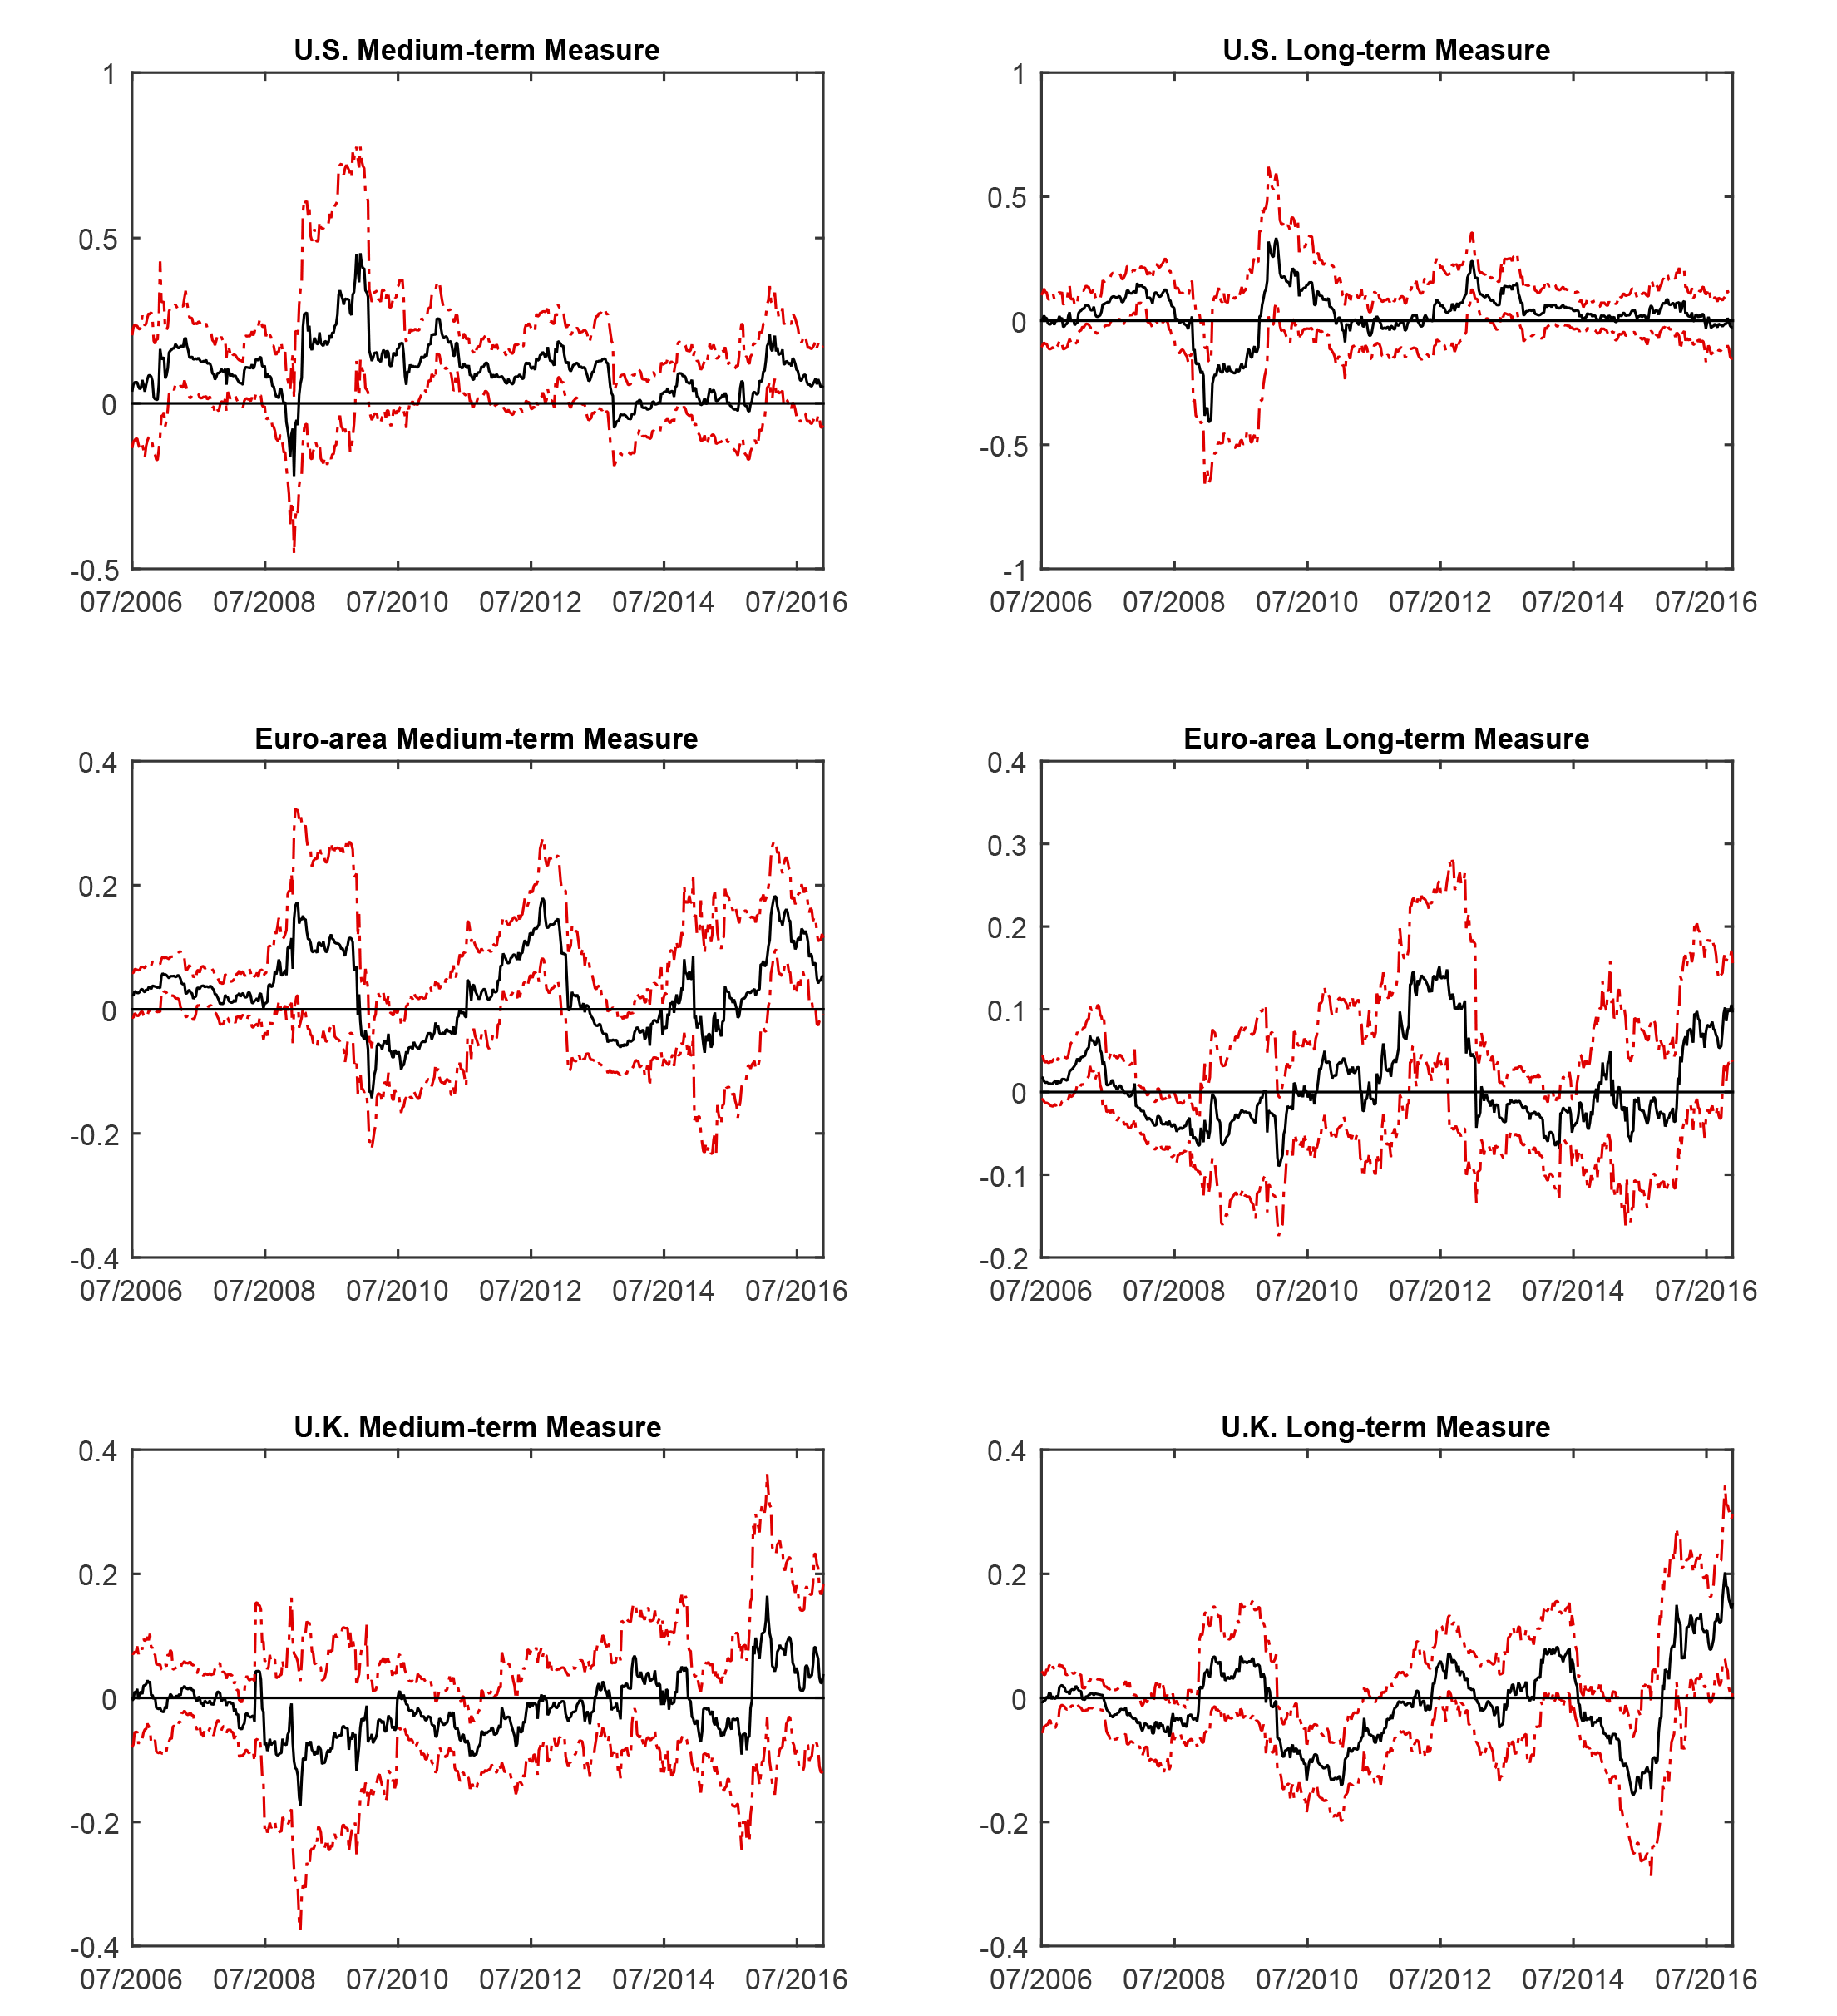 Figure 4: Macroeconomic News Surprises and Inflation Compensation Measures. See accessible link for data.